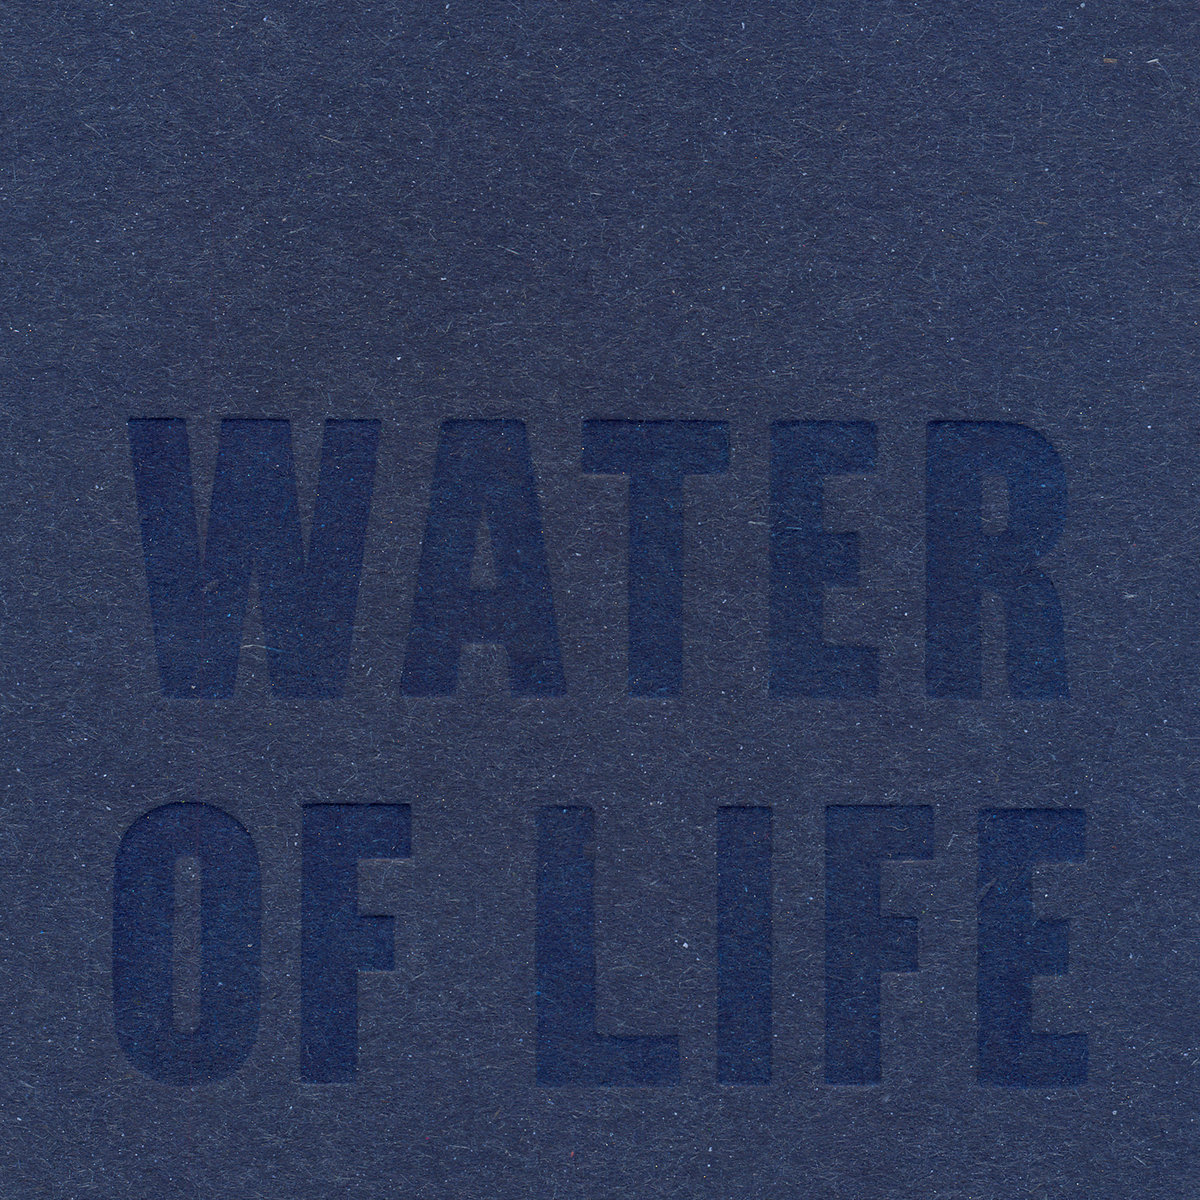 essays on water water of life prints and essays water of life  water of life prints and essays water of life by water of life